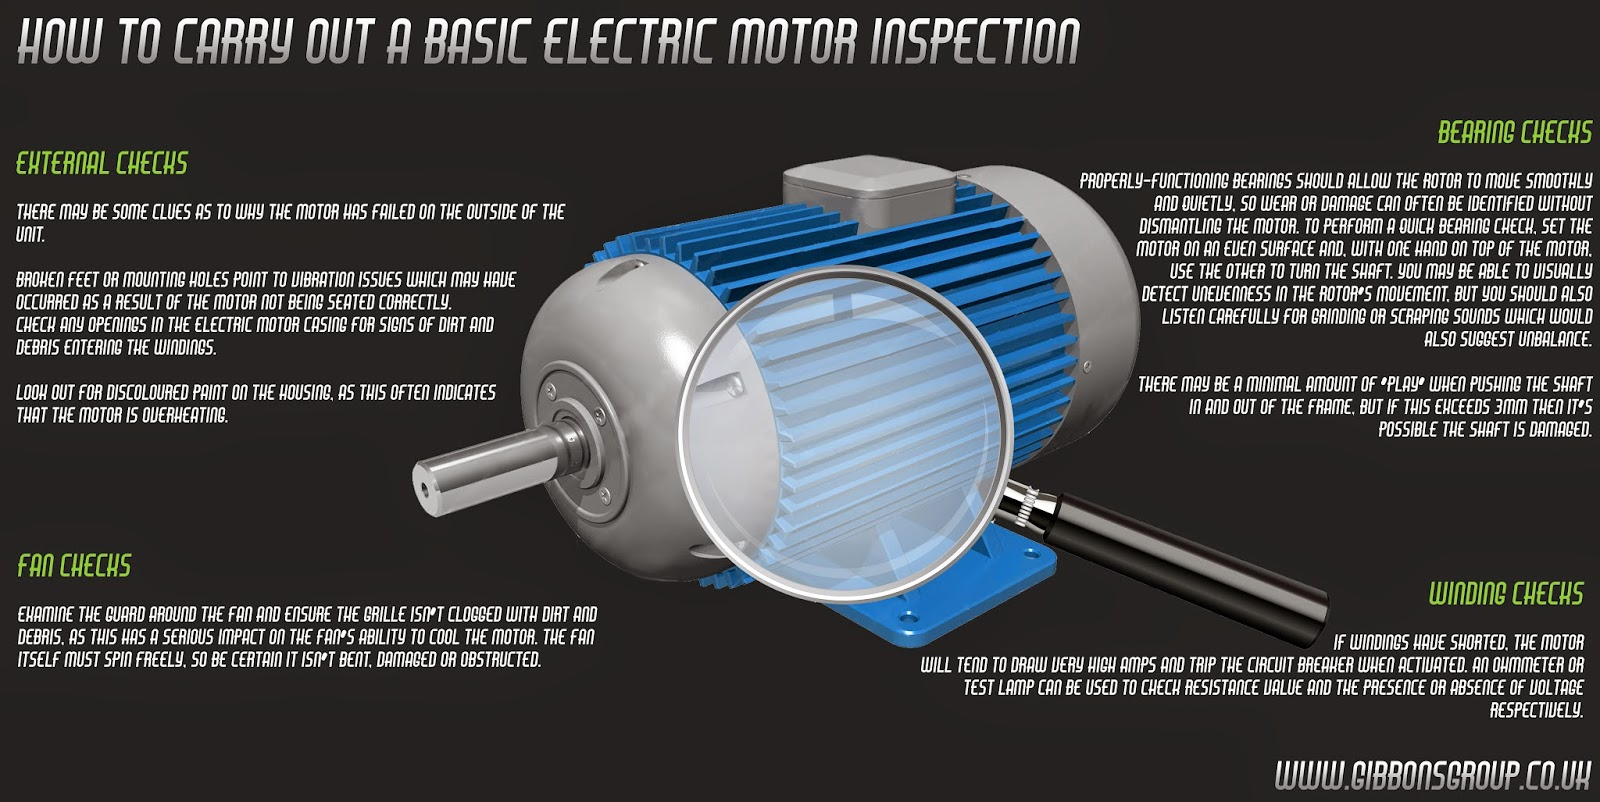 How to carry out a basic electric motor inspection the for How to check ac motor